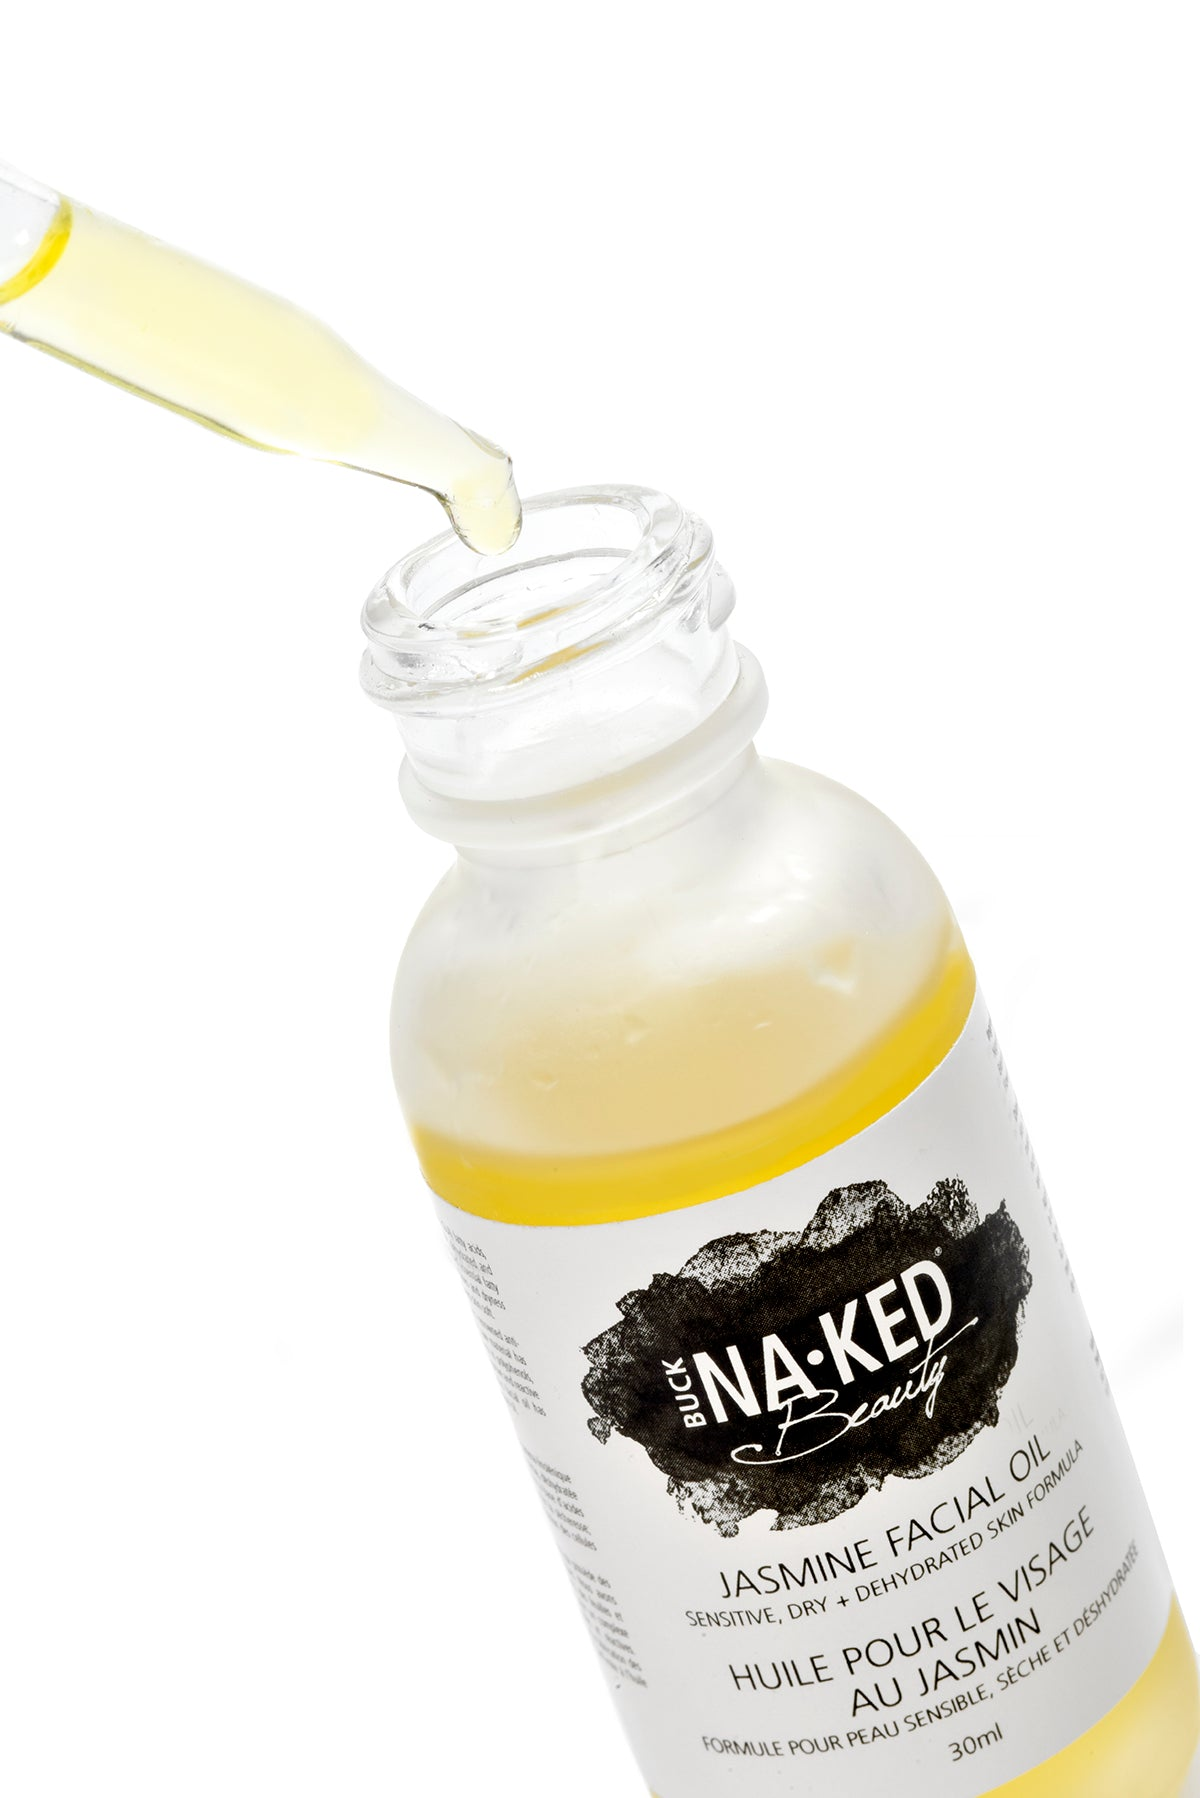 Jasmine Facial Oil: Sensitive, Dry + Dehydrated Skin Formula - Buck Naked Soap Company Inc